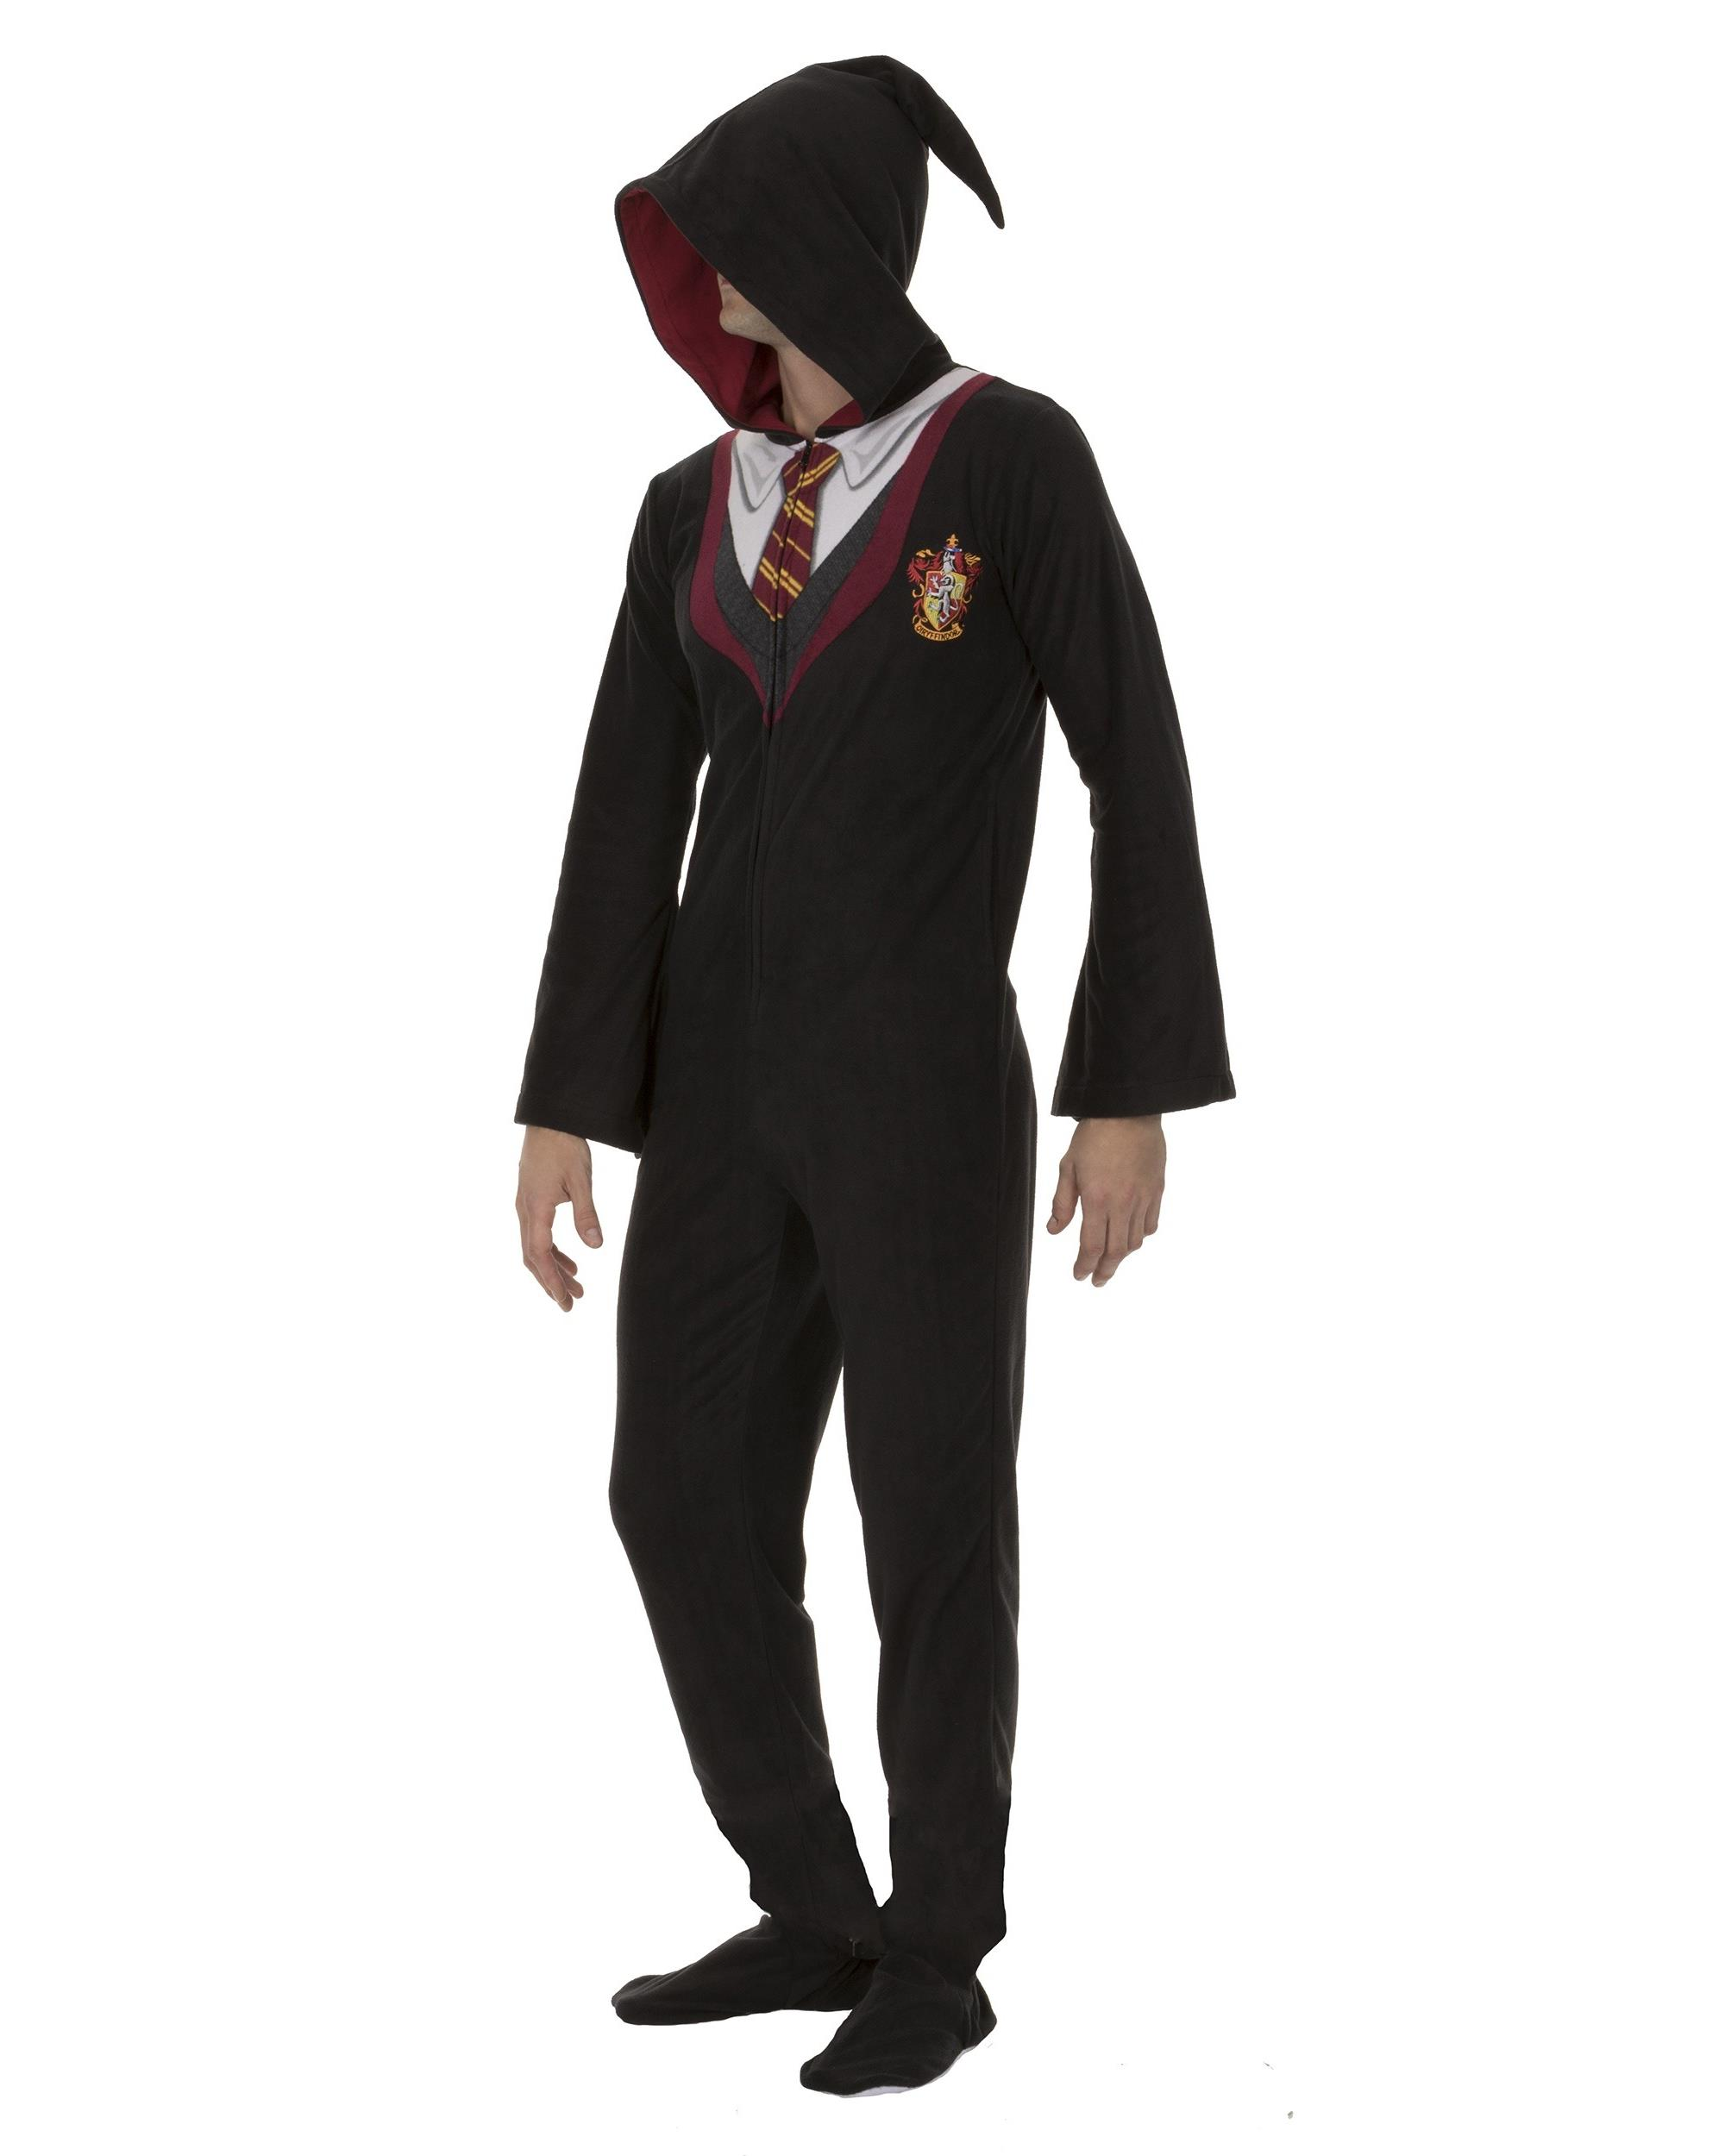 HARRY POTTER Women/'s Hooded Union Suit Cosplay Pajamas Adult Multiple Sizes